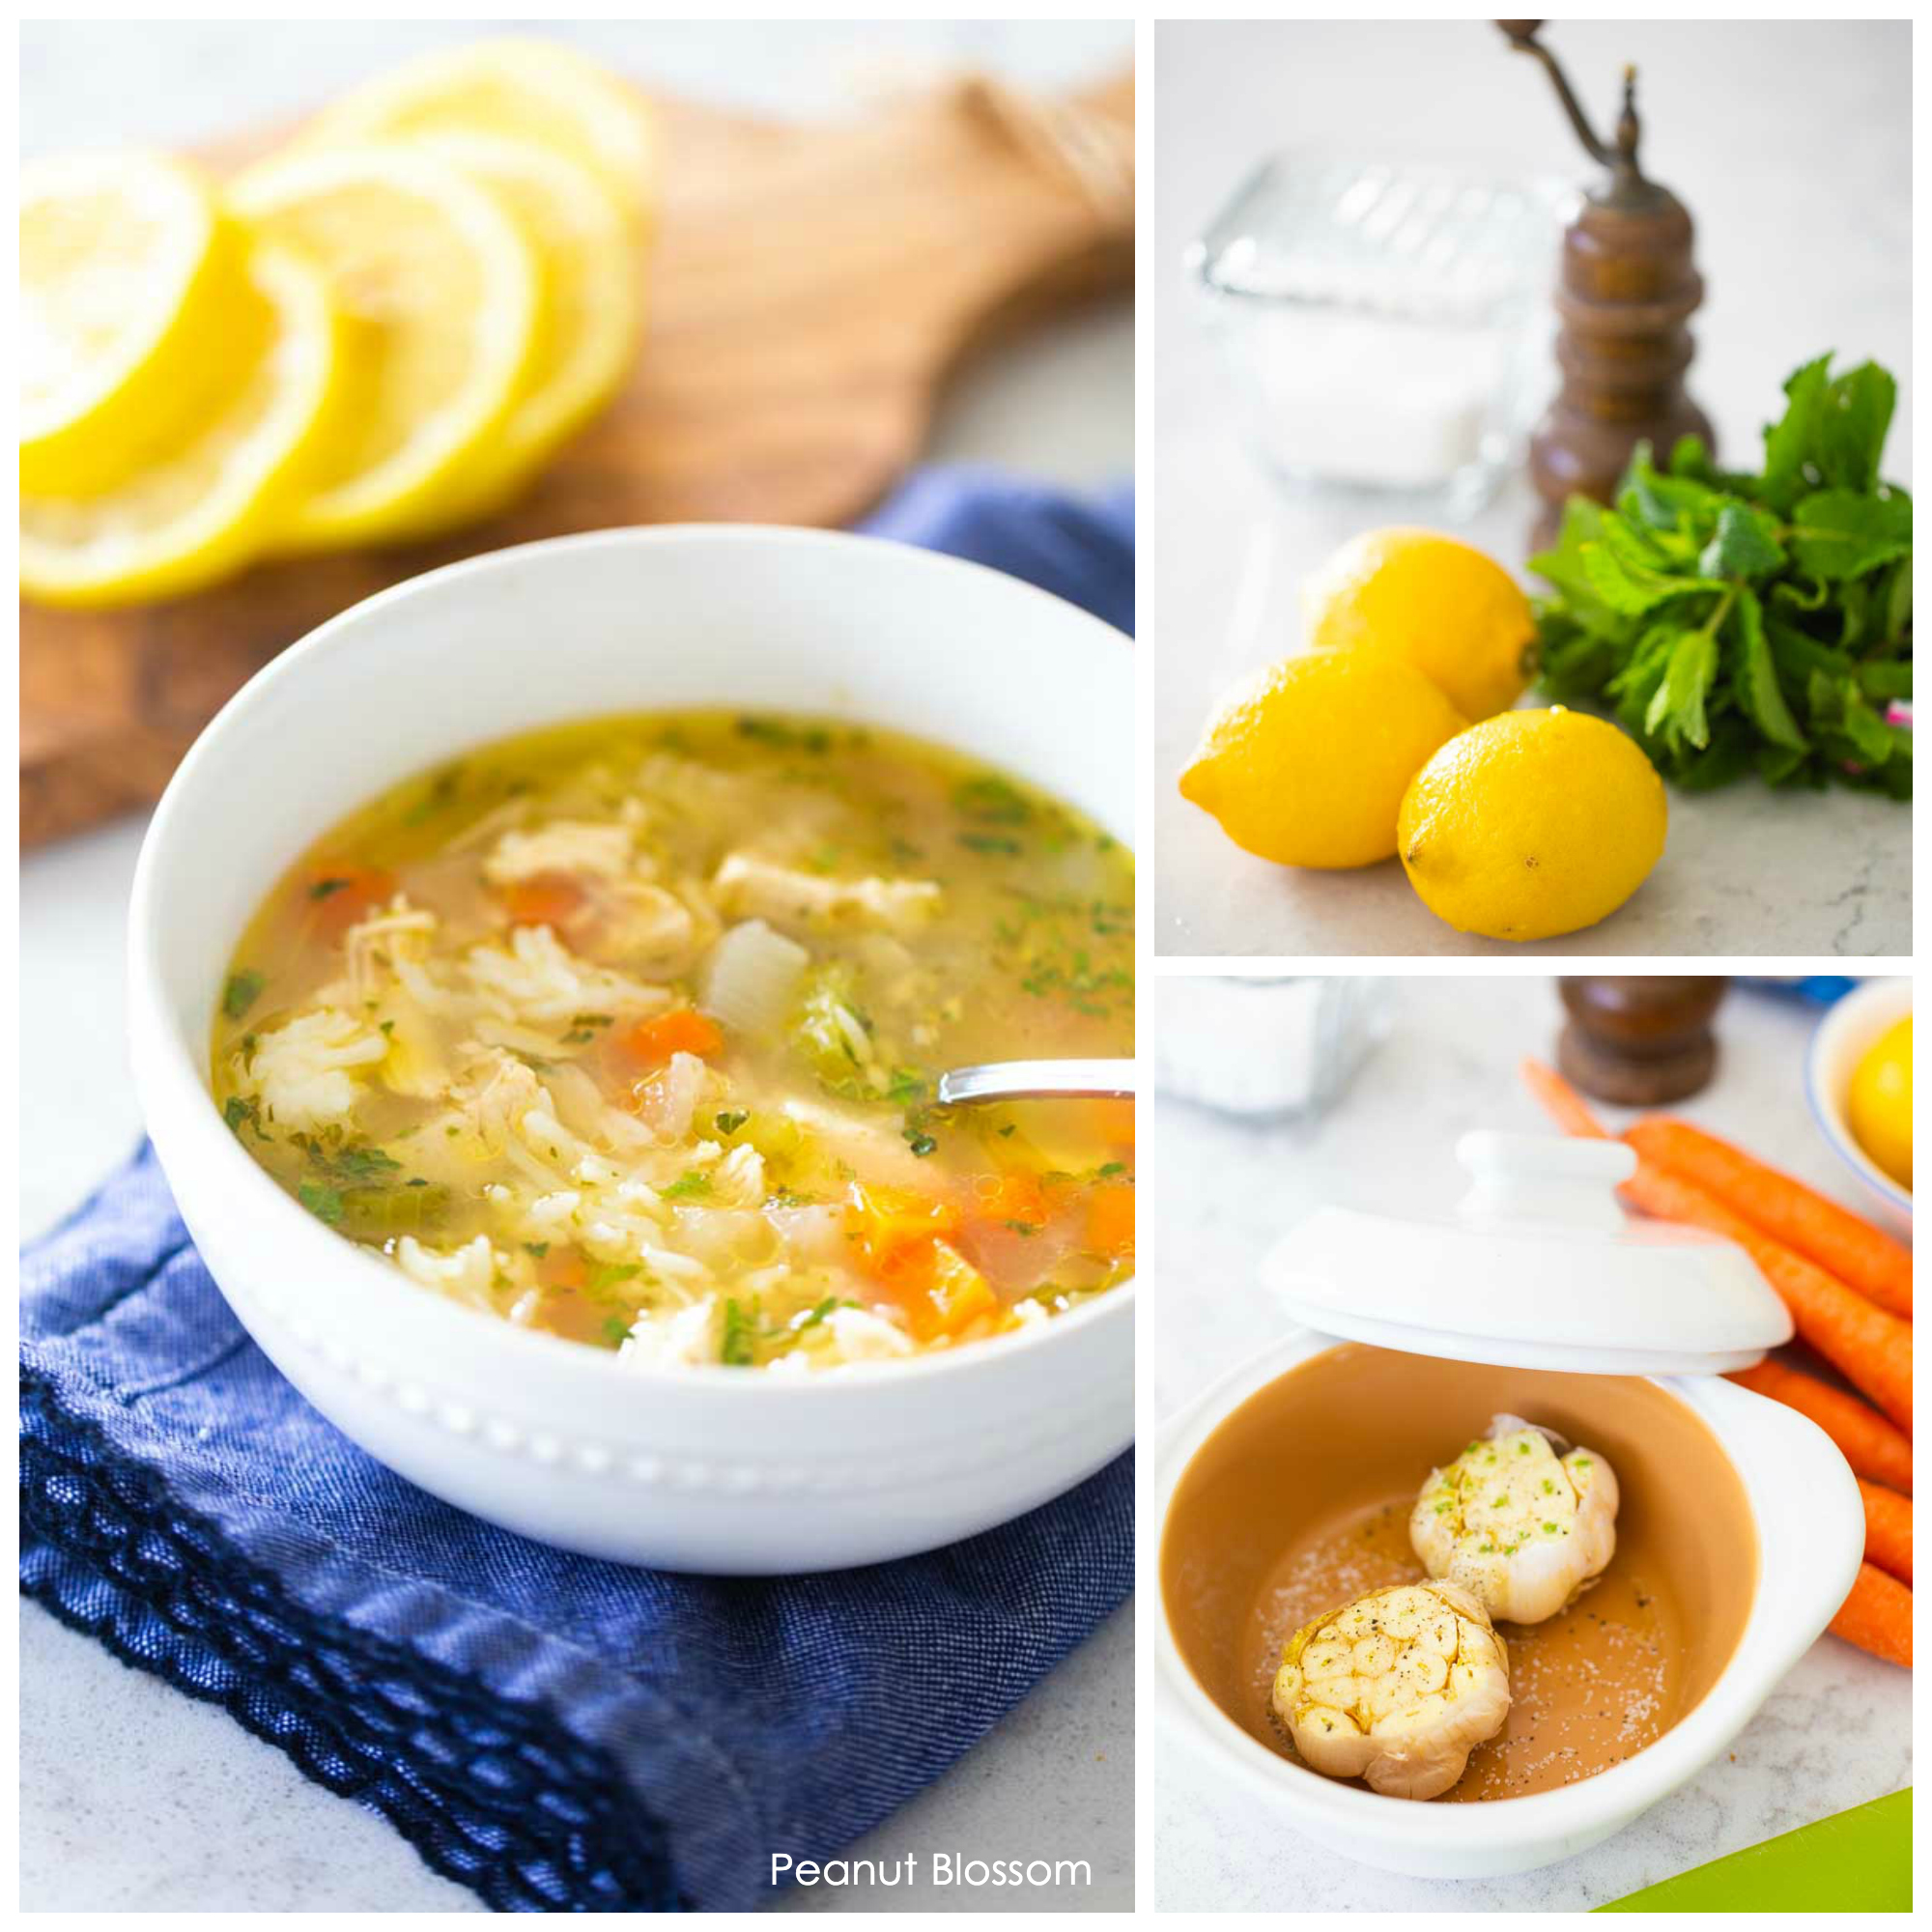 Delicious and healthy homemade chicken soup for cold and flu season with roasted garlic and fresh lemons.